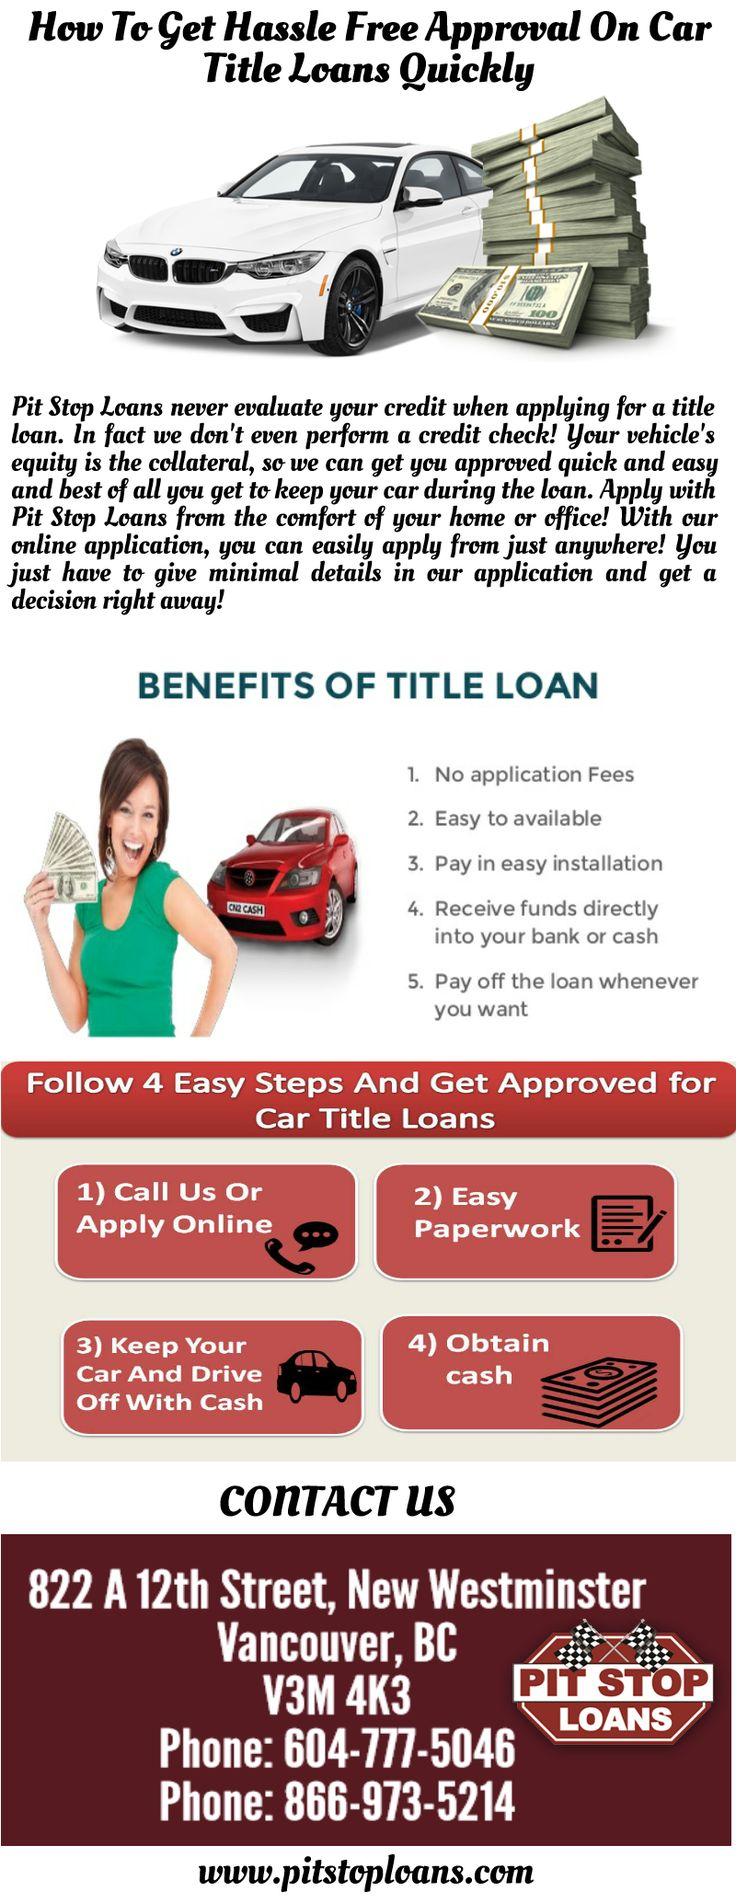 You can get hassle free approval on car title loans with Pit Stop Loans. We offer quick and instant approval on title loans at lowest interest rates with no prepayment penalty. Our monthly payments are low. For more information visit http://www.pitstoploans.com/car-title-loans-surrey-british-columbia